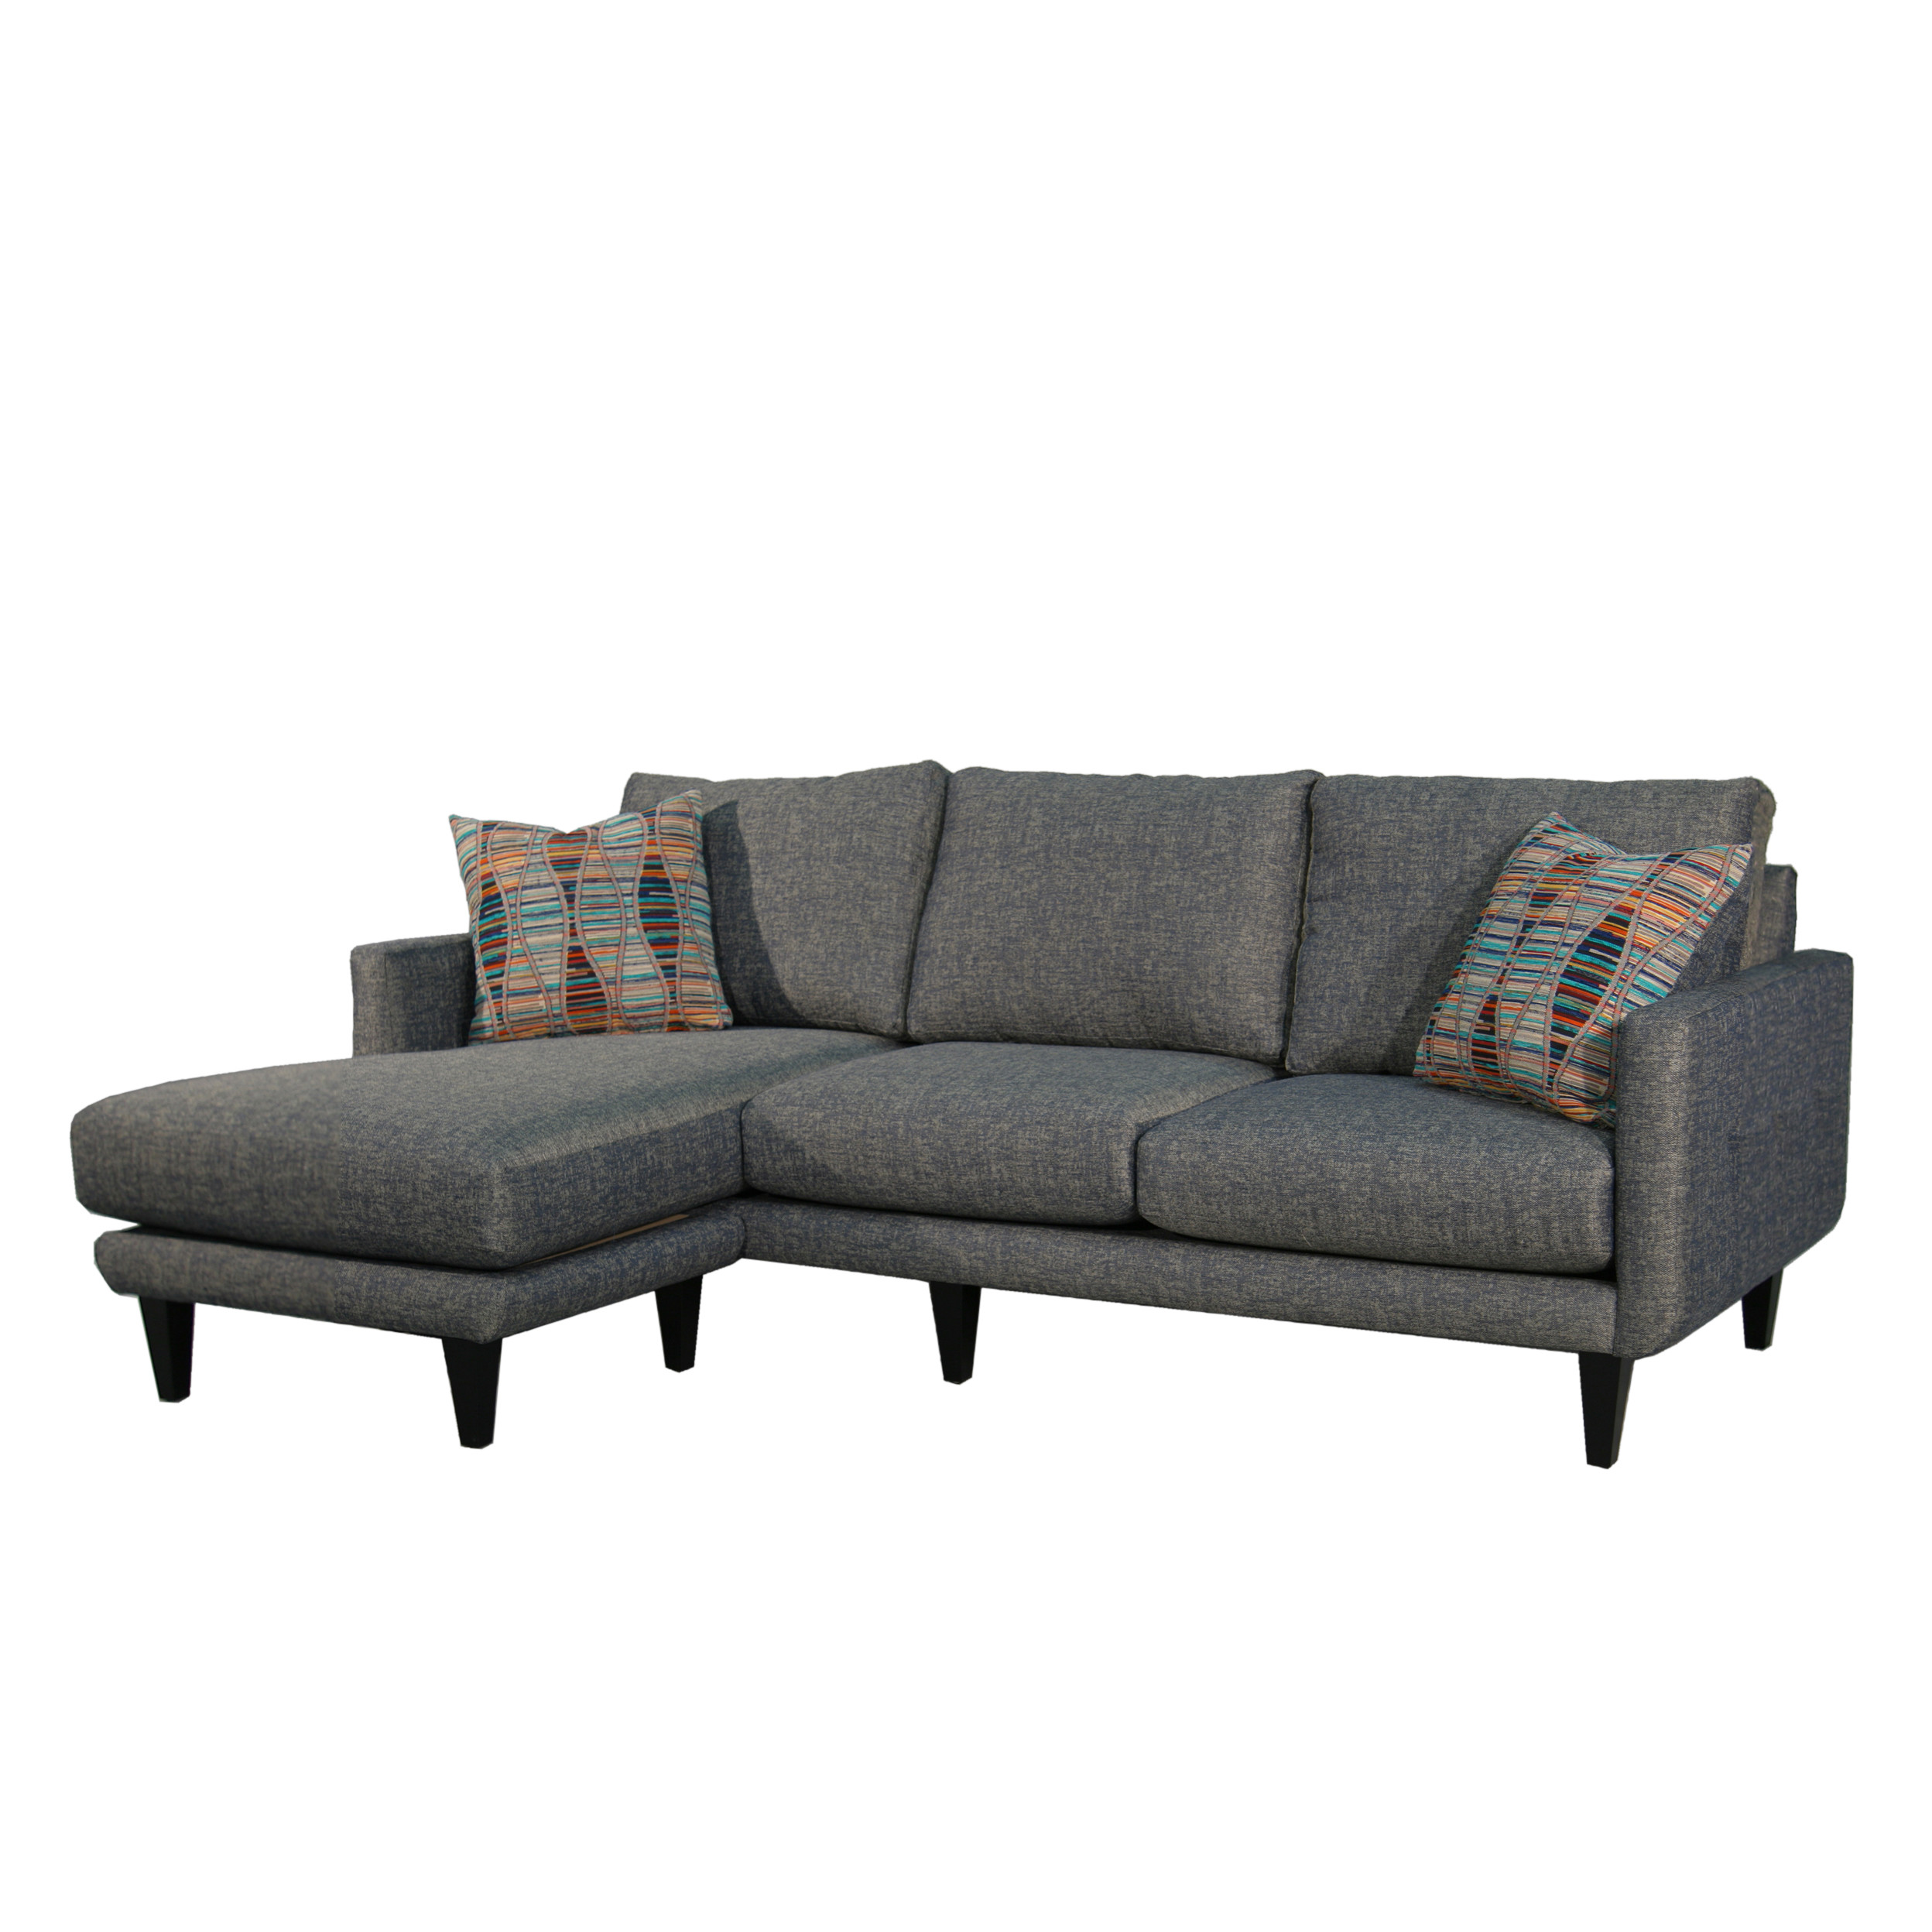 Sectional Sleeper Sofa | Gray Sectional Sleeper Sofa | Walmart Sectionals